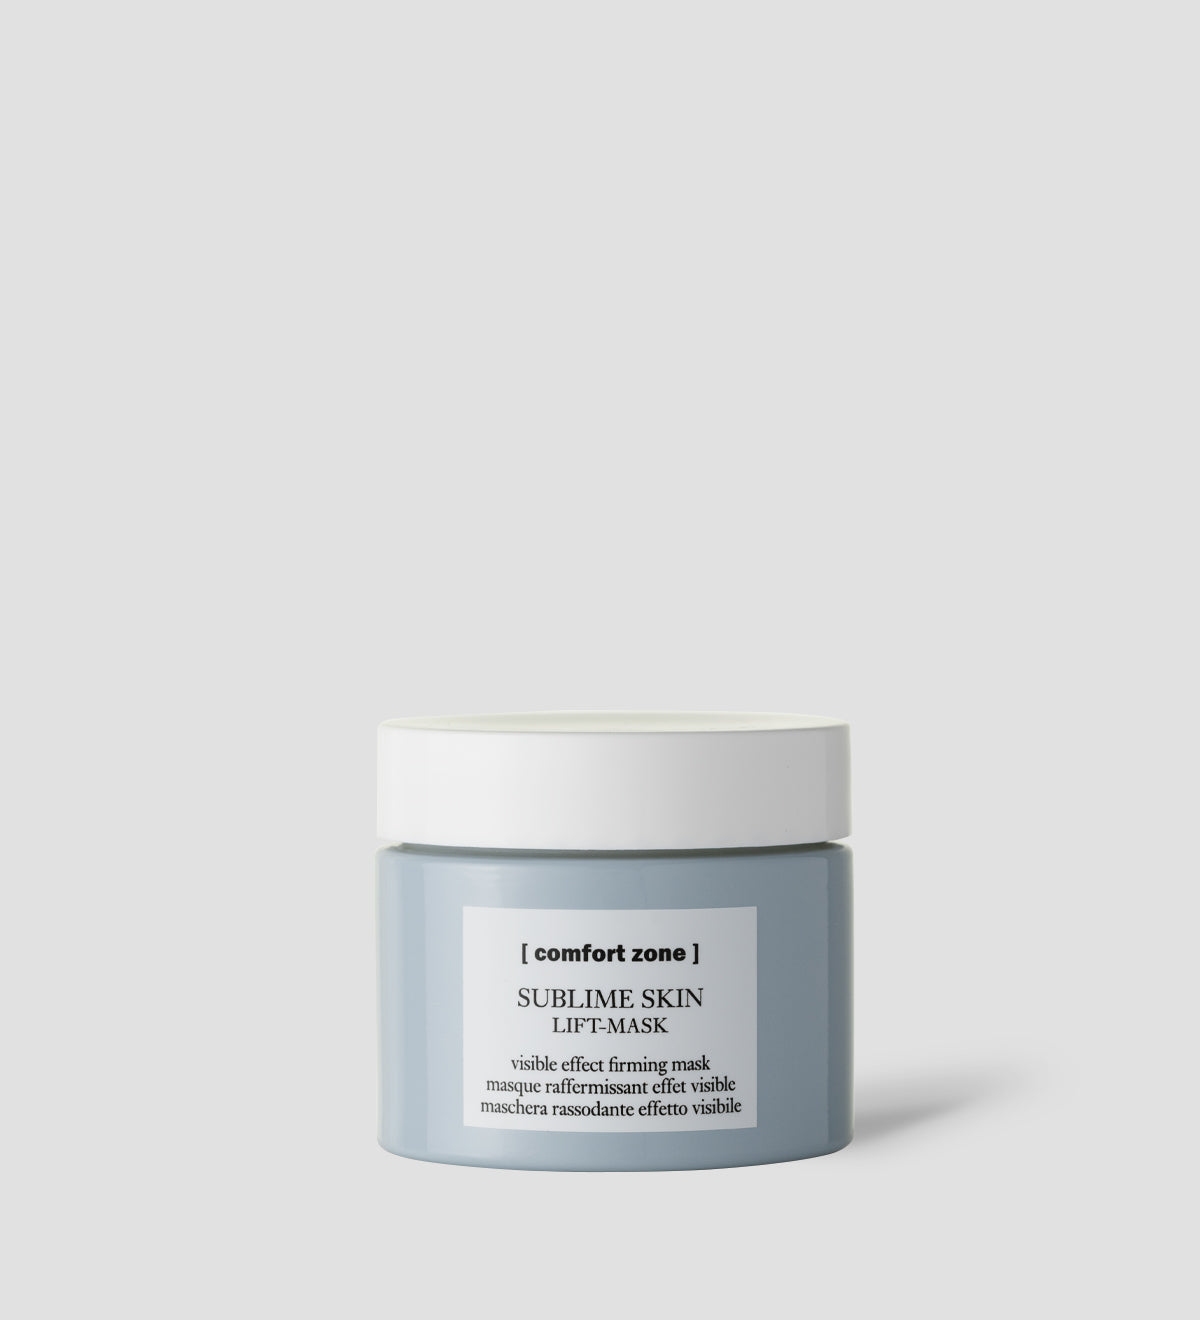 Comfort Zone: SUBLIME SKIN LIFT-MASK Immediately visible firming mask-1